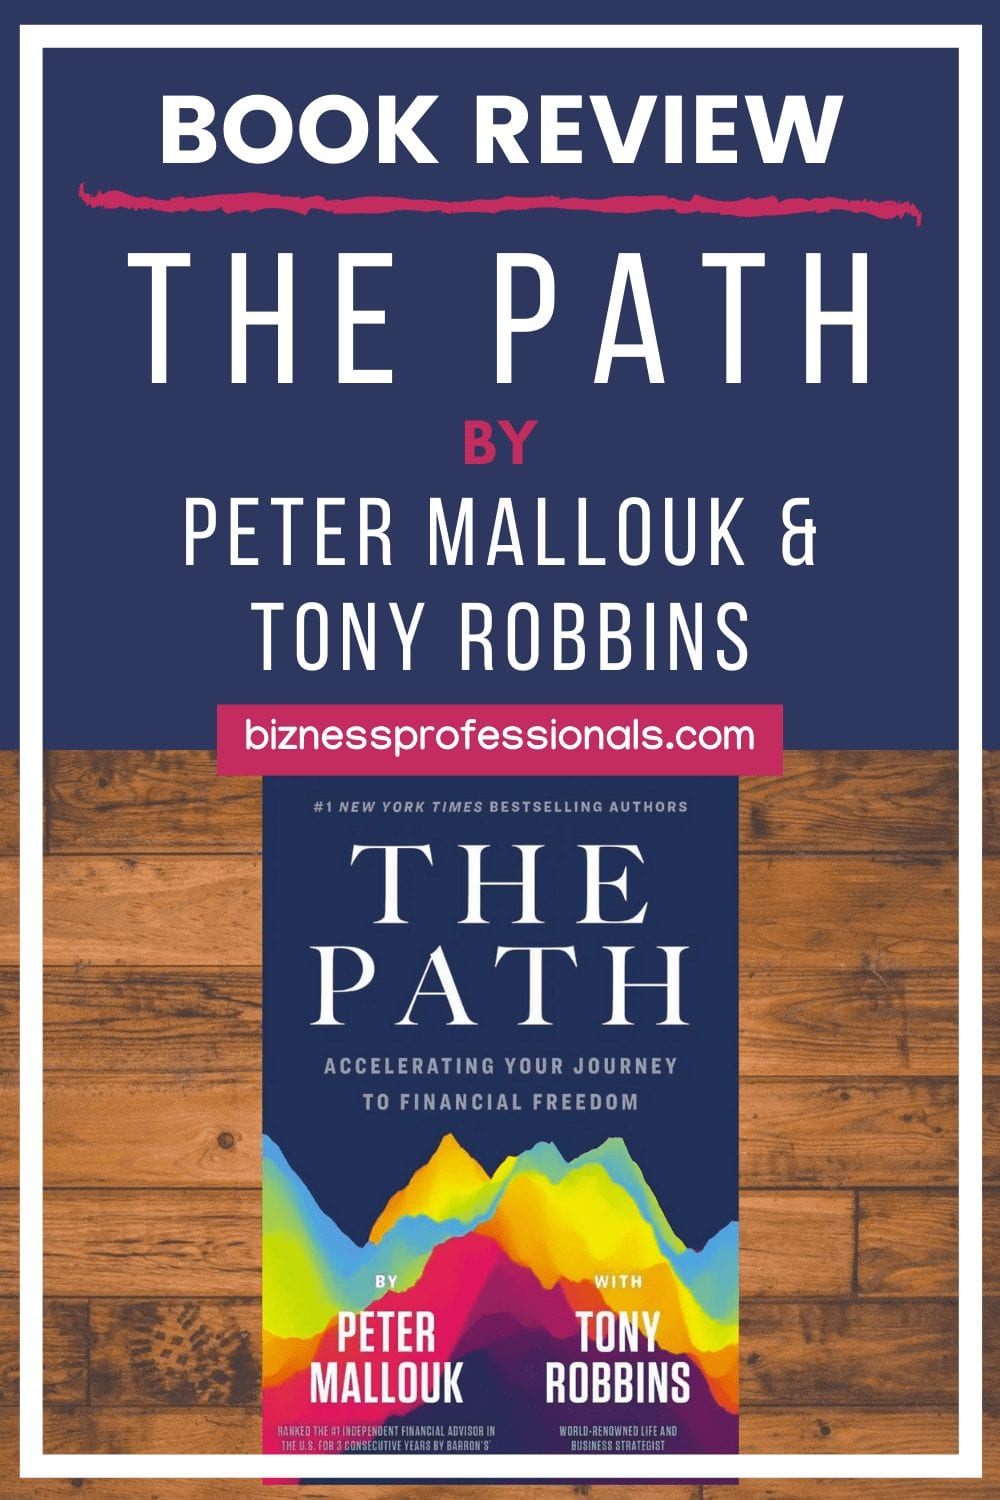 the path book review peter mallouk